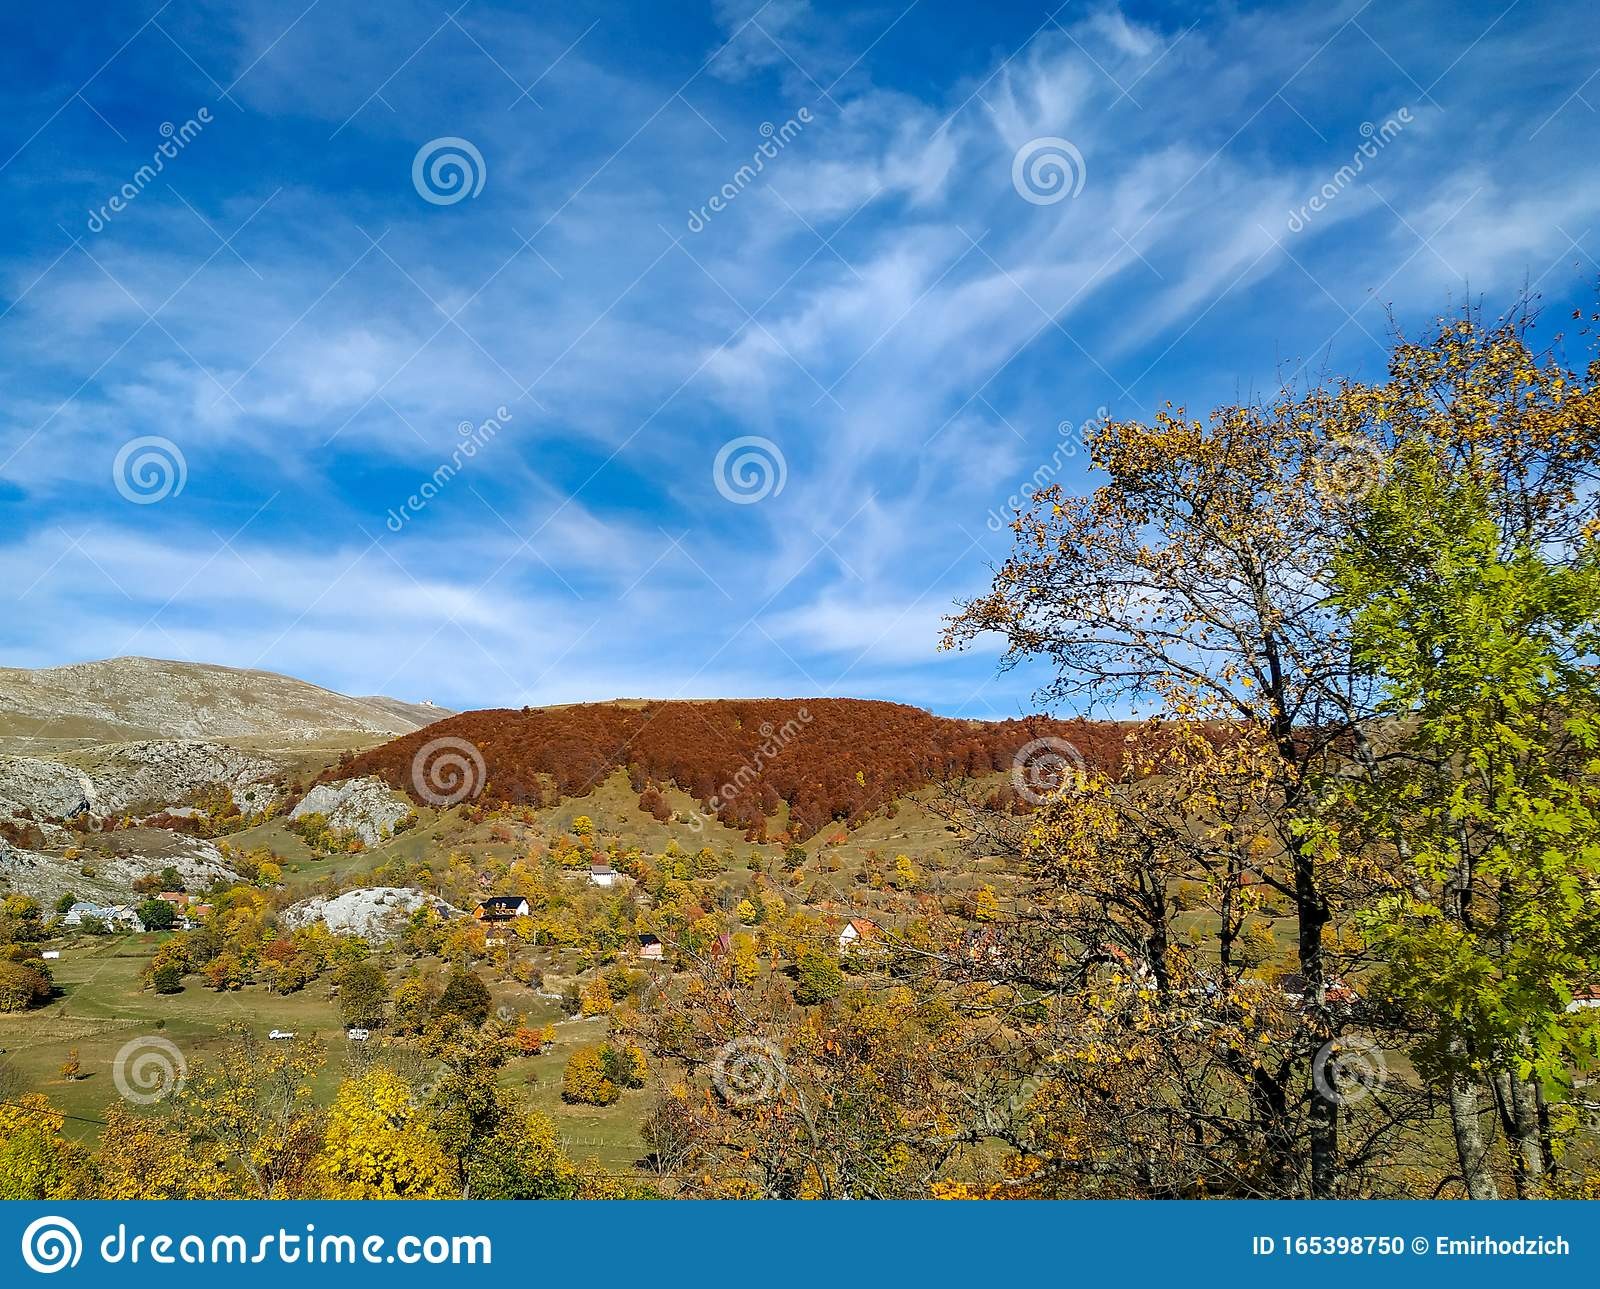 Distant Red Forest On A Hill With A View Of Natural Environment As A Beautiful Autumn Colorful Wallpaper For Stress And Anxiety Stock Photo Image Of Countryside Climb 165398750